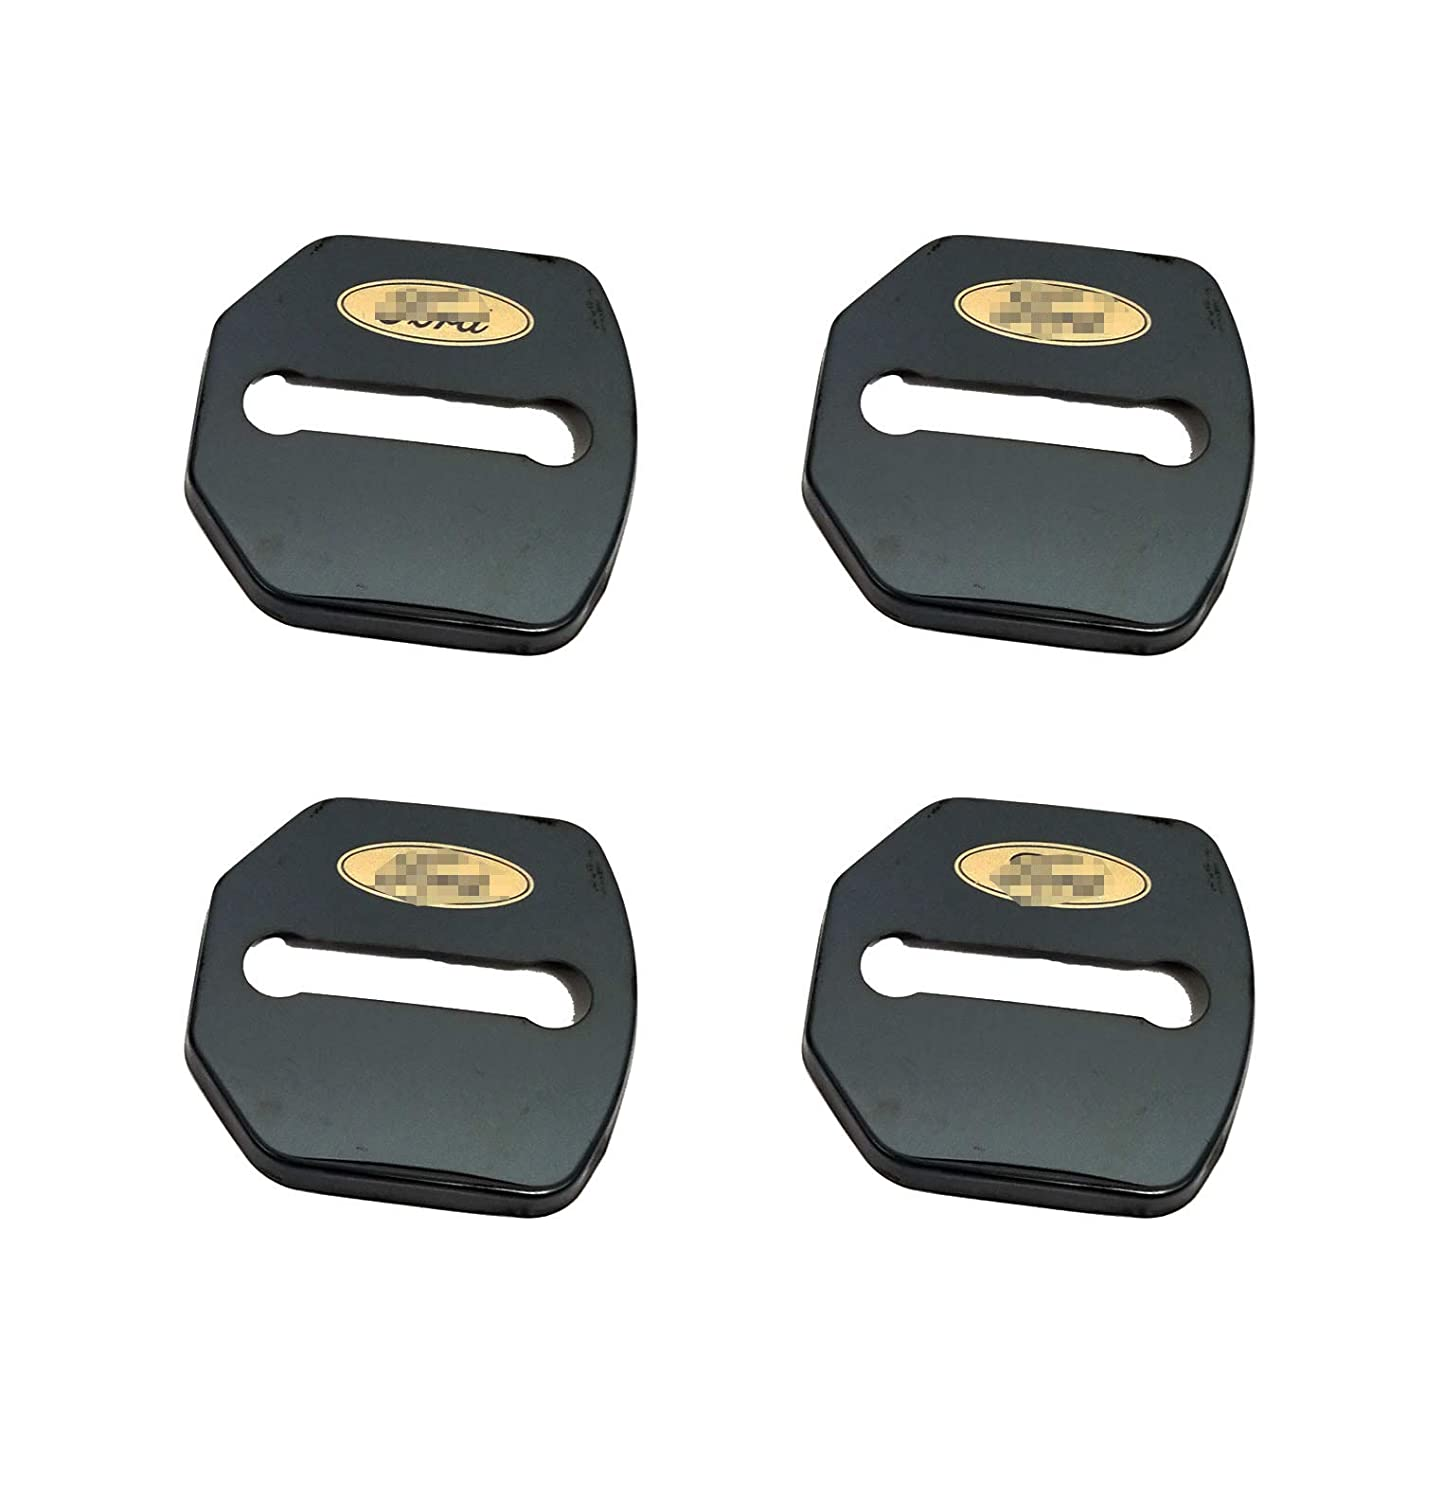 Stainless Steel Door Lock Striker Cover with 3M Adhesive Backing Lock Protector Buckle Decorative Cover for JEEP Accessories Pack of 4 Black